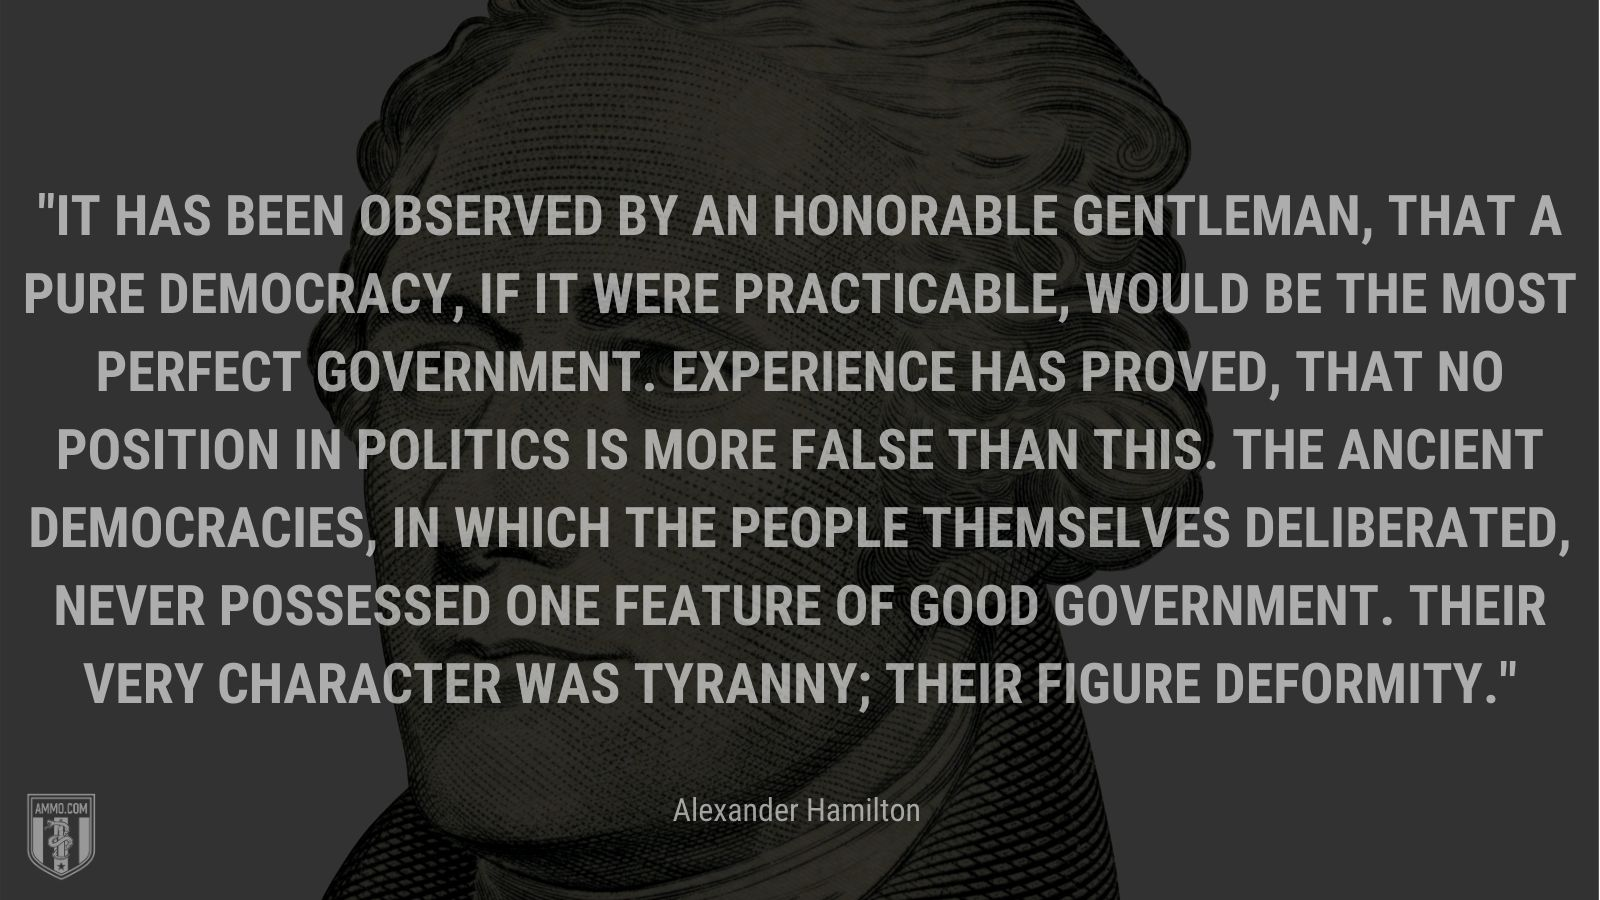 """""""It has been observed by an honorable gentleman, that a pure democracy, if it were practicable, would be the most perfect government. Experience has proved, that no position in politics is more false than this. The ancient democracies, in which the people themselves deliberated, never possessed one feature of good government. Their very character was tyranny; their figure deformity."""" - Alexander Hamilton"""